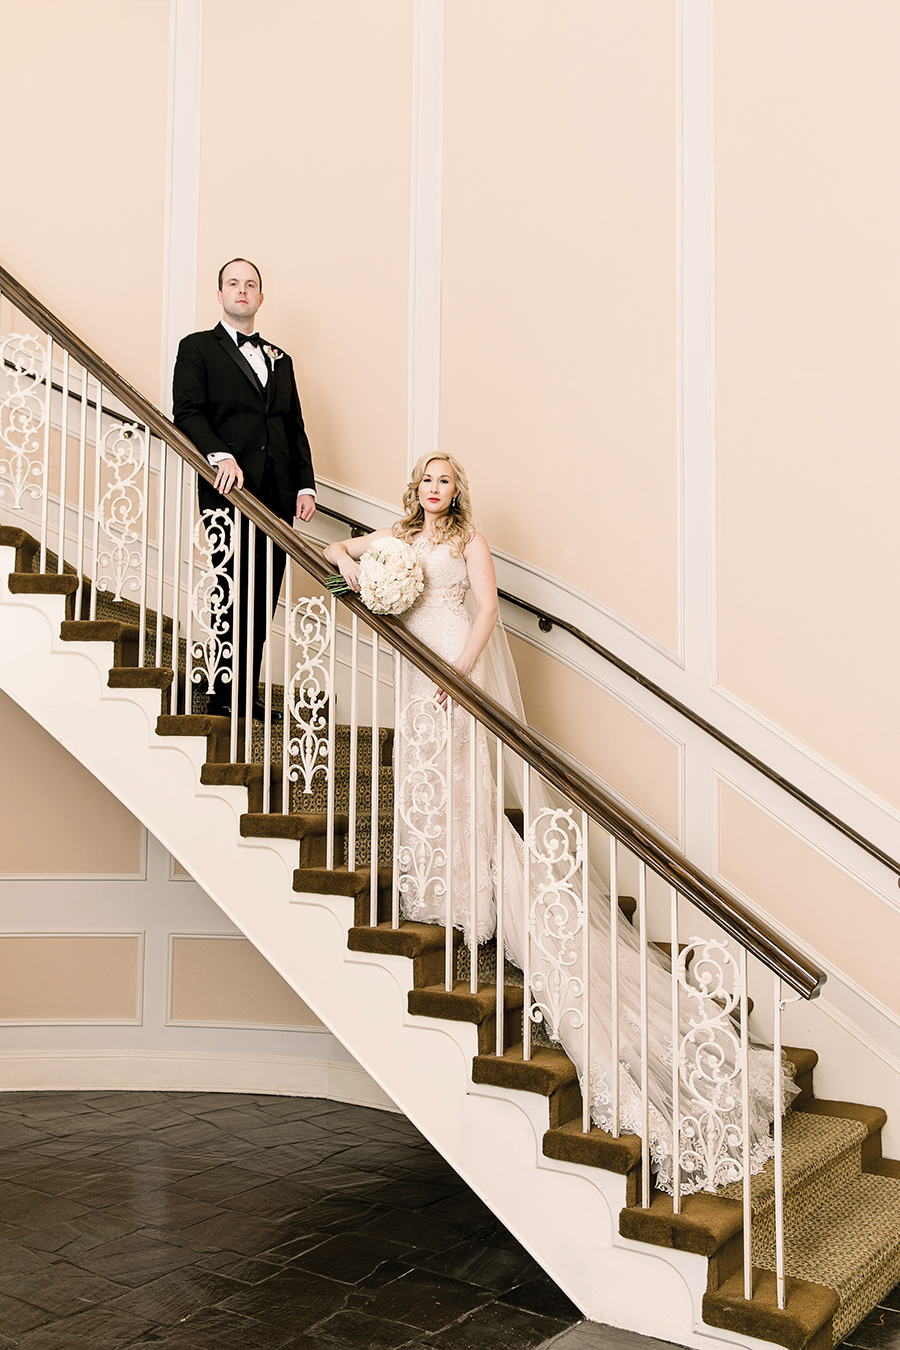 A bride and groom pose on the double circular staircase at Chateau. Photo: Theresa Elizabeth Photography